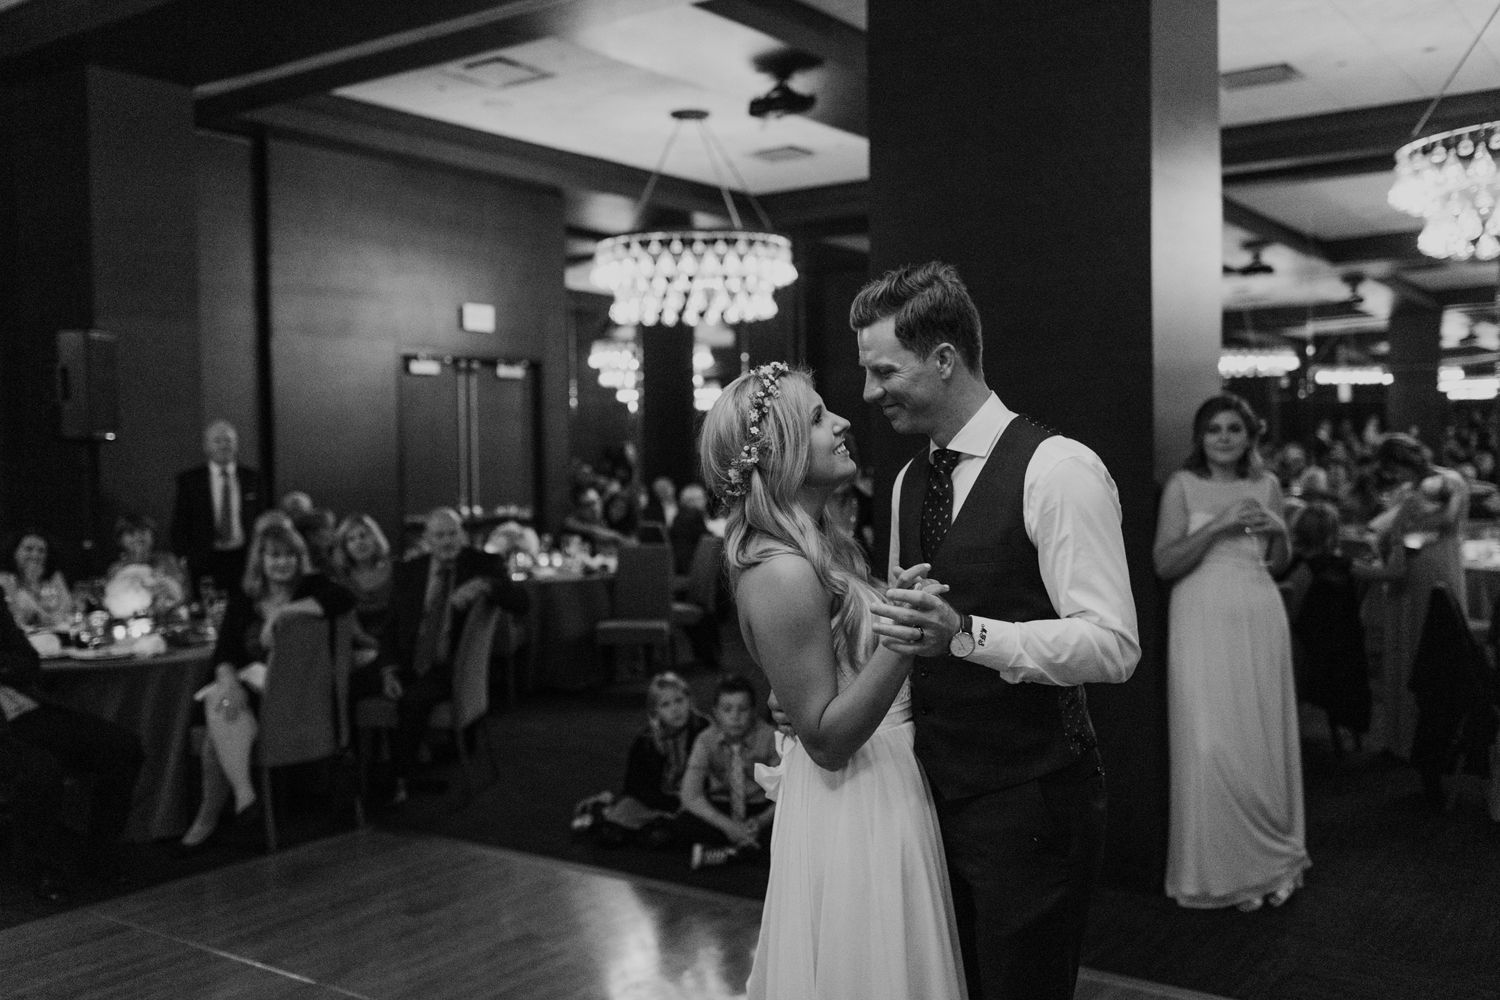 Thompson Hotel Wedding Reception Ballroom First Dance Love Married